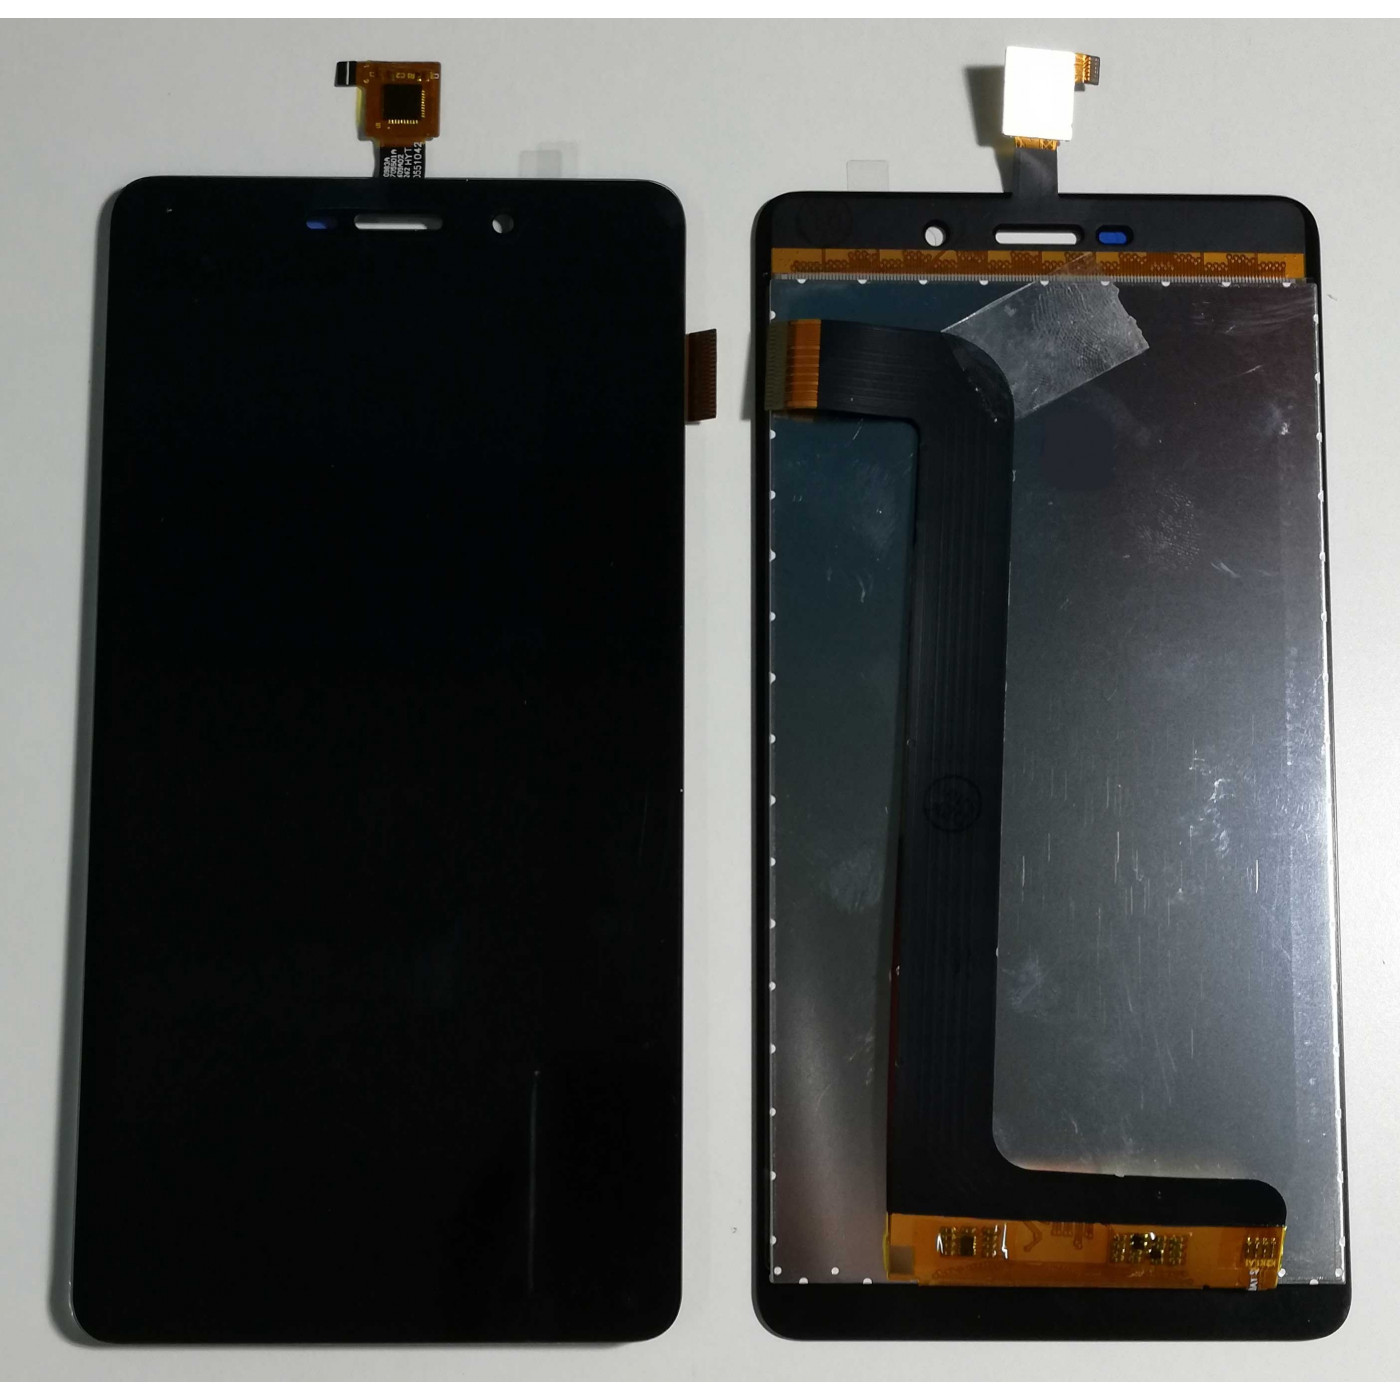 TOUCH SCREEN GLASS + LCD DISPLAY For ASSEMBLED Wiko Pulp Fab 5.5 4G Black